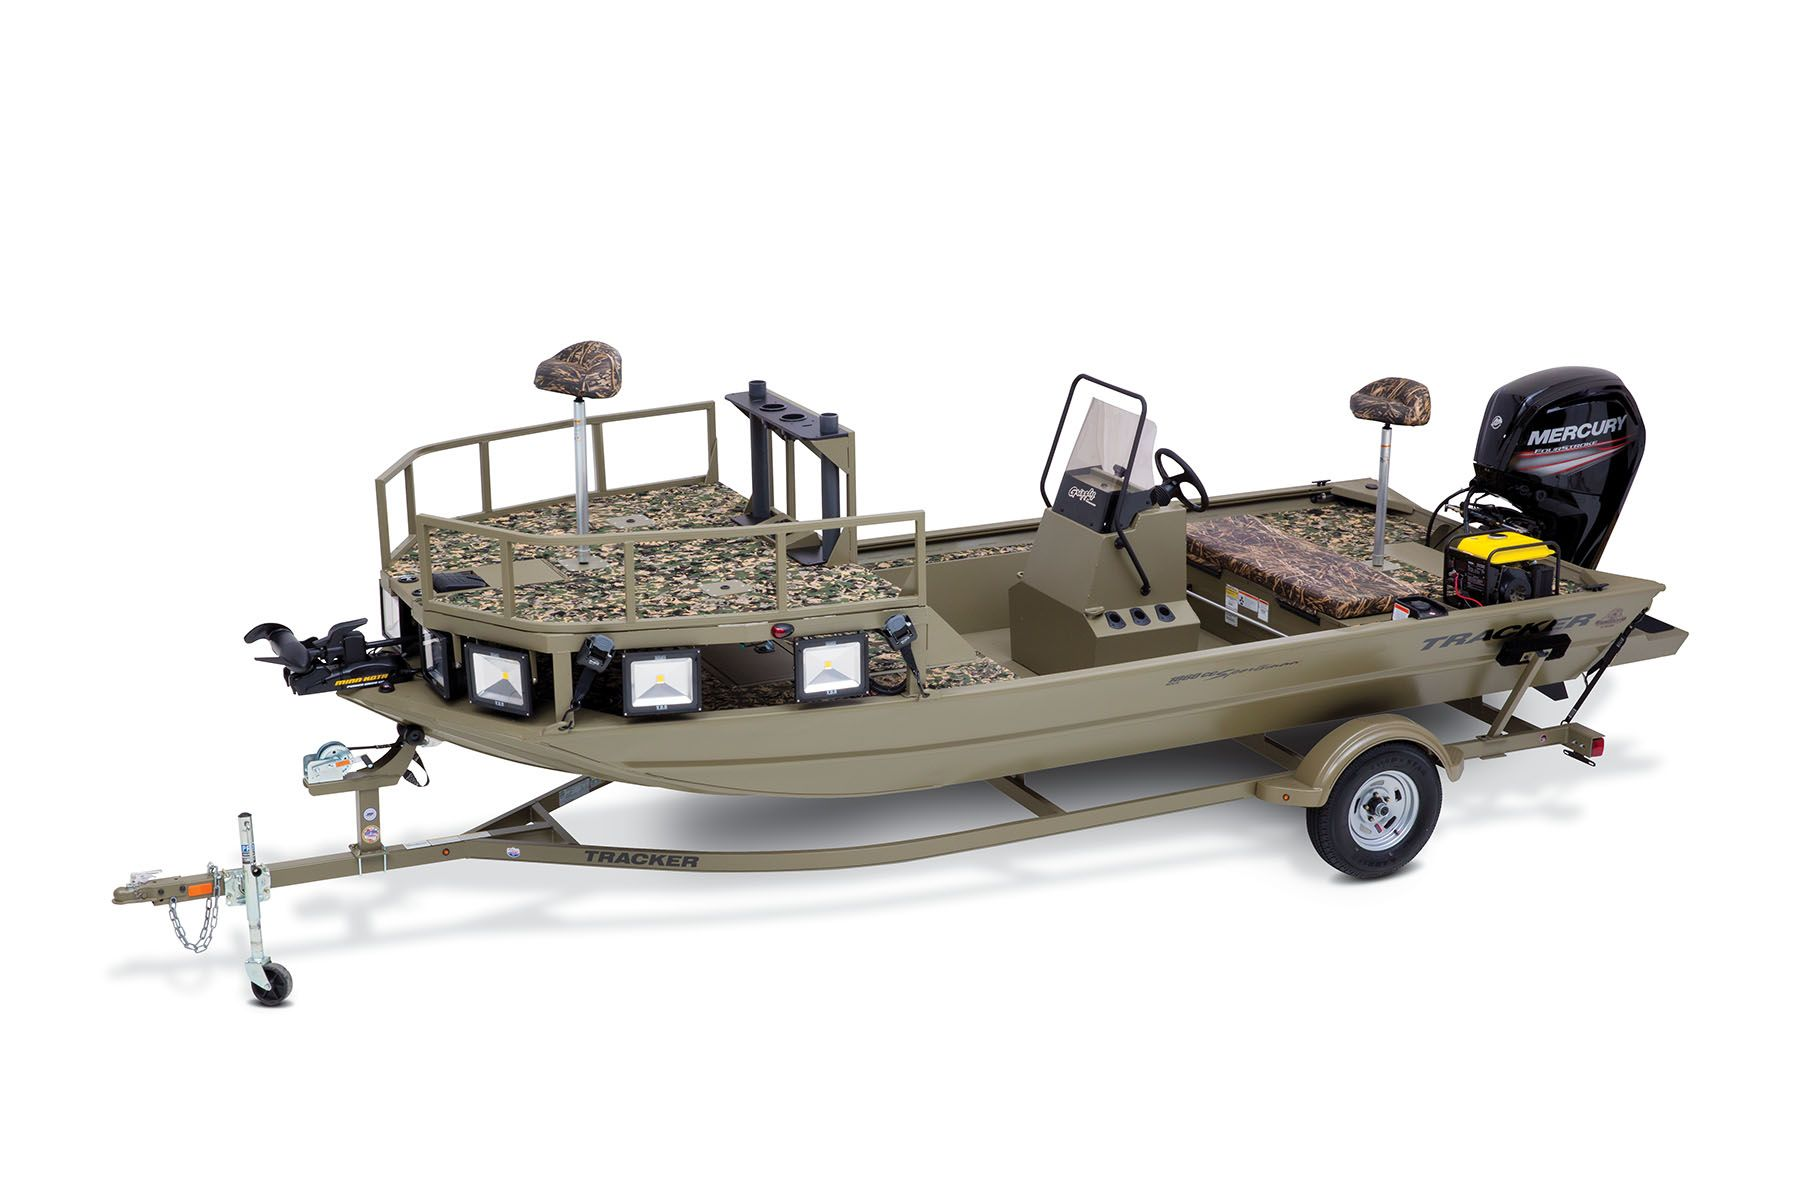 Tracker Grizzly All-Welded 1860 CC Bow Fishing Sportsman Boat Available  through Springfield Tracker Boat Center Contact Thaddeus (Thad) F. Jameson  General ...